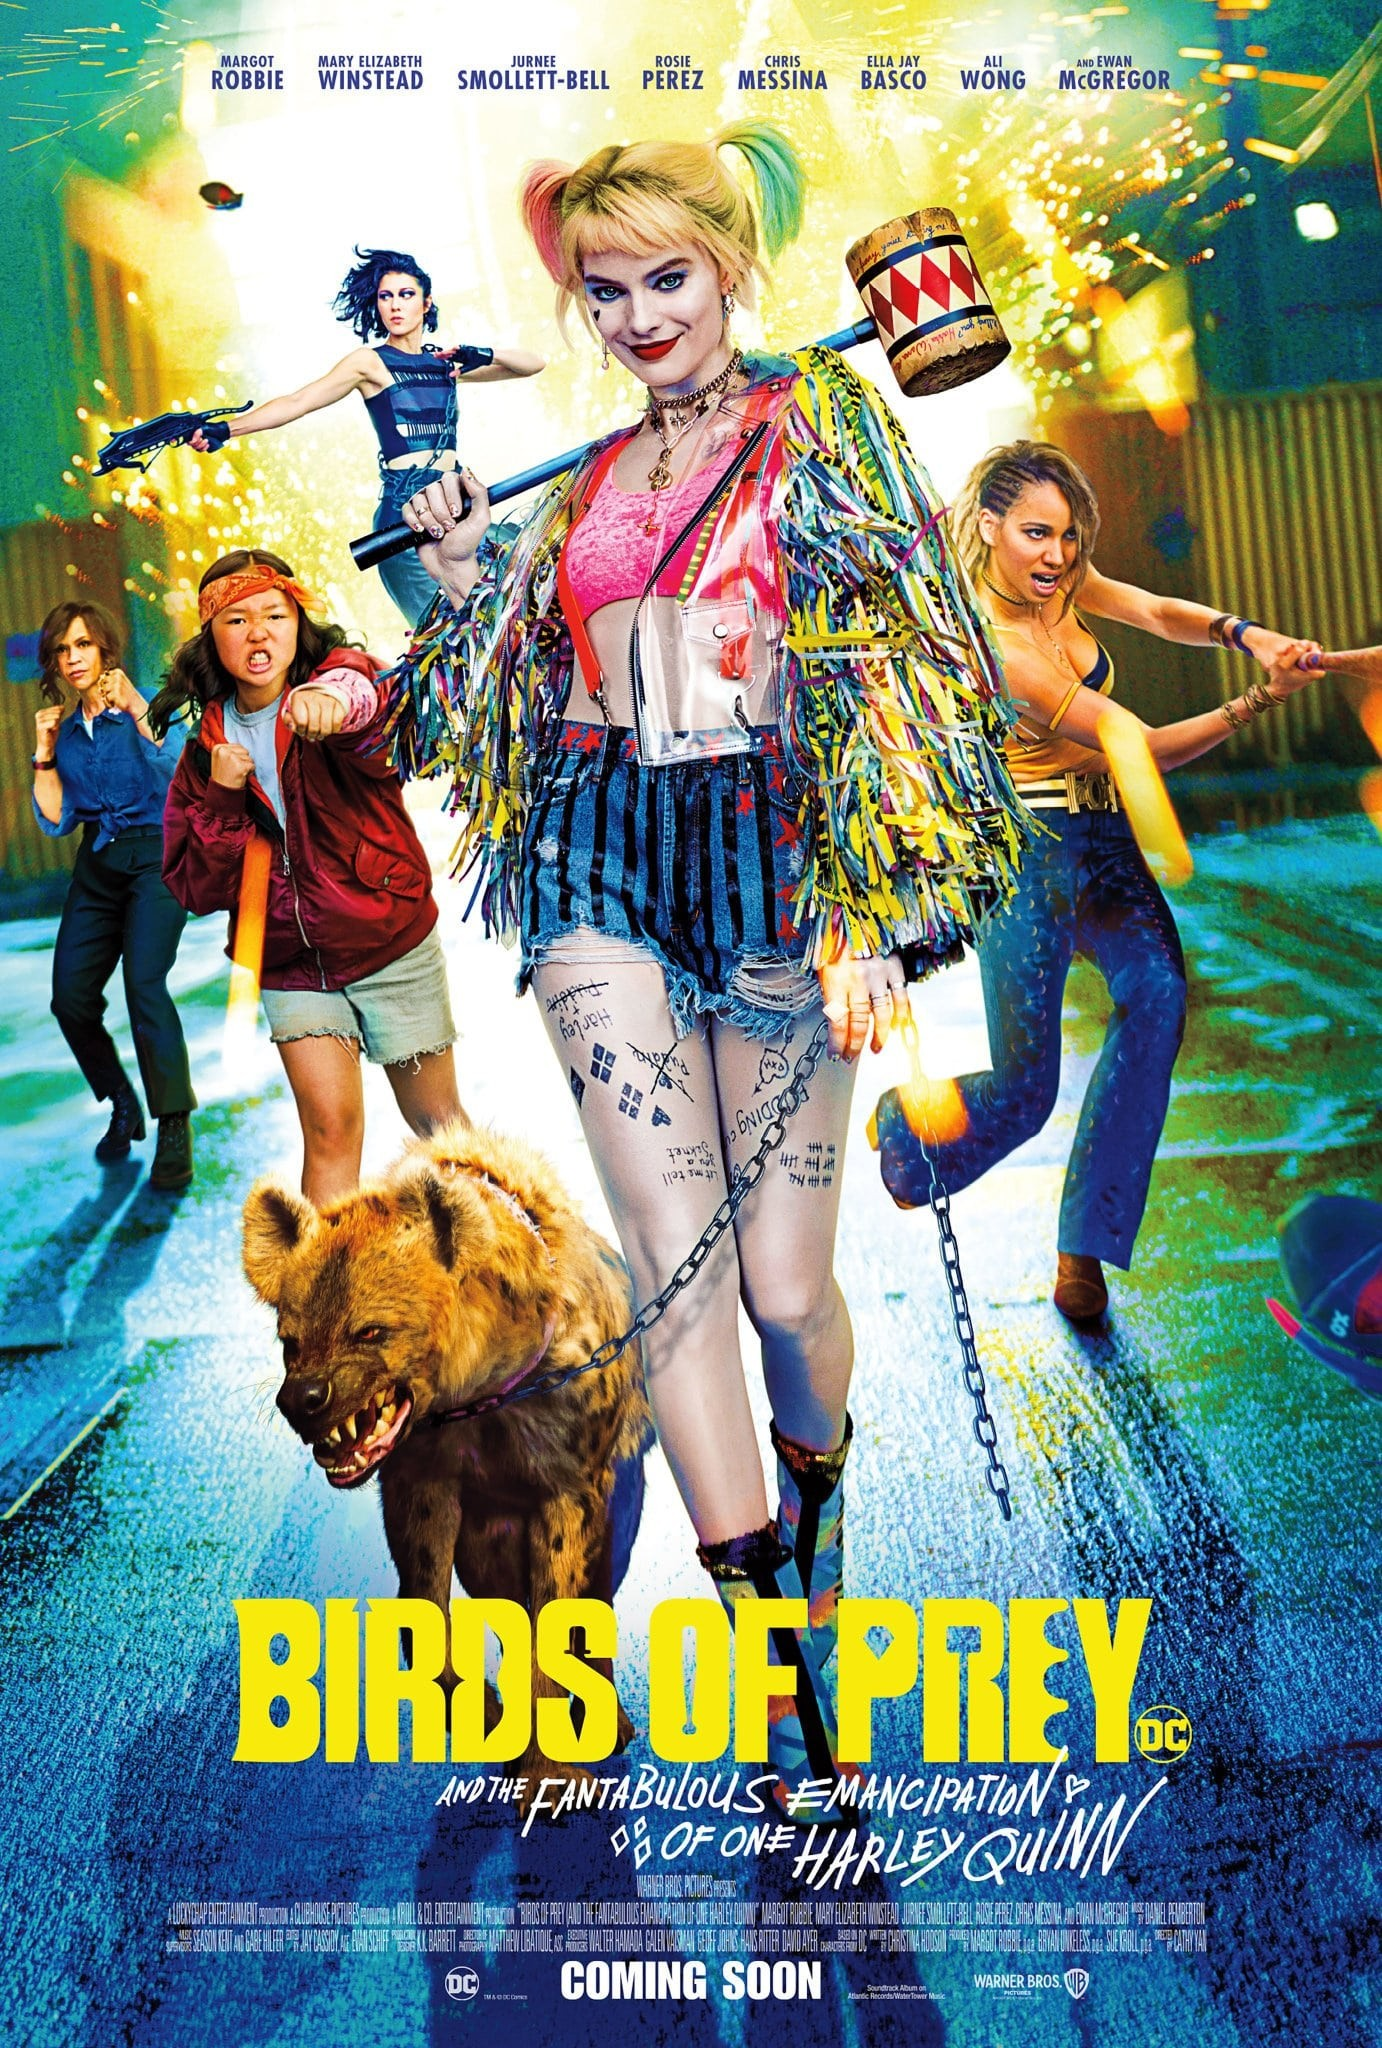 Birds of Prey (Movie) | DC Database | Fandom